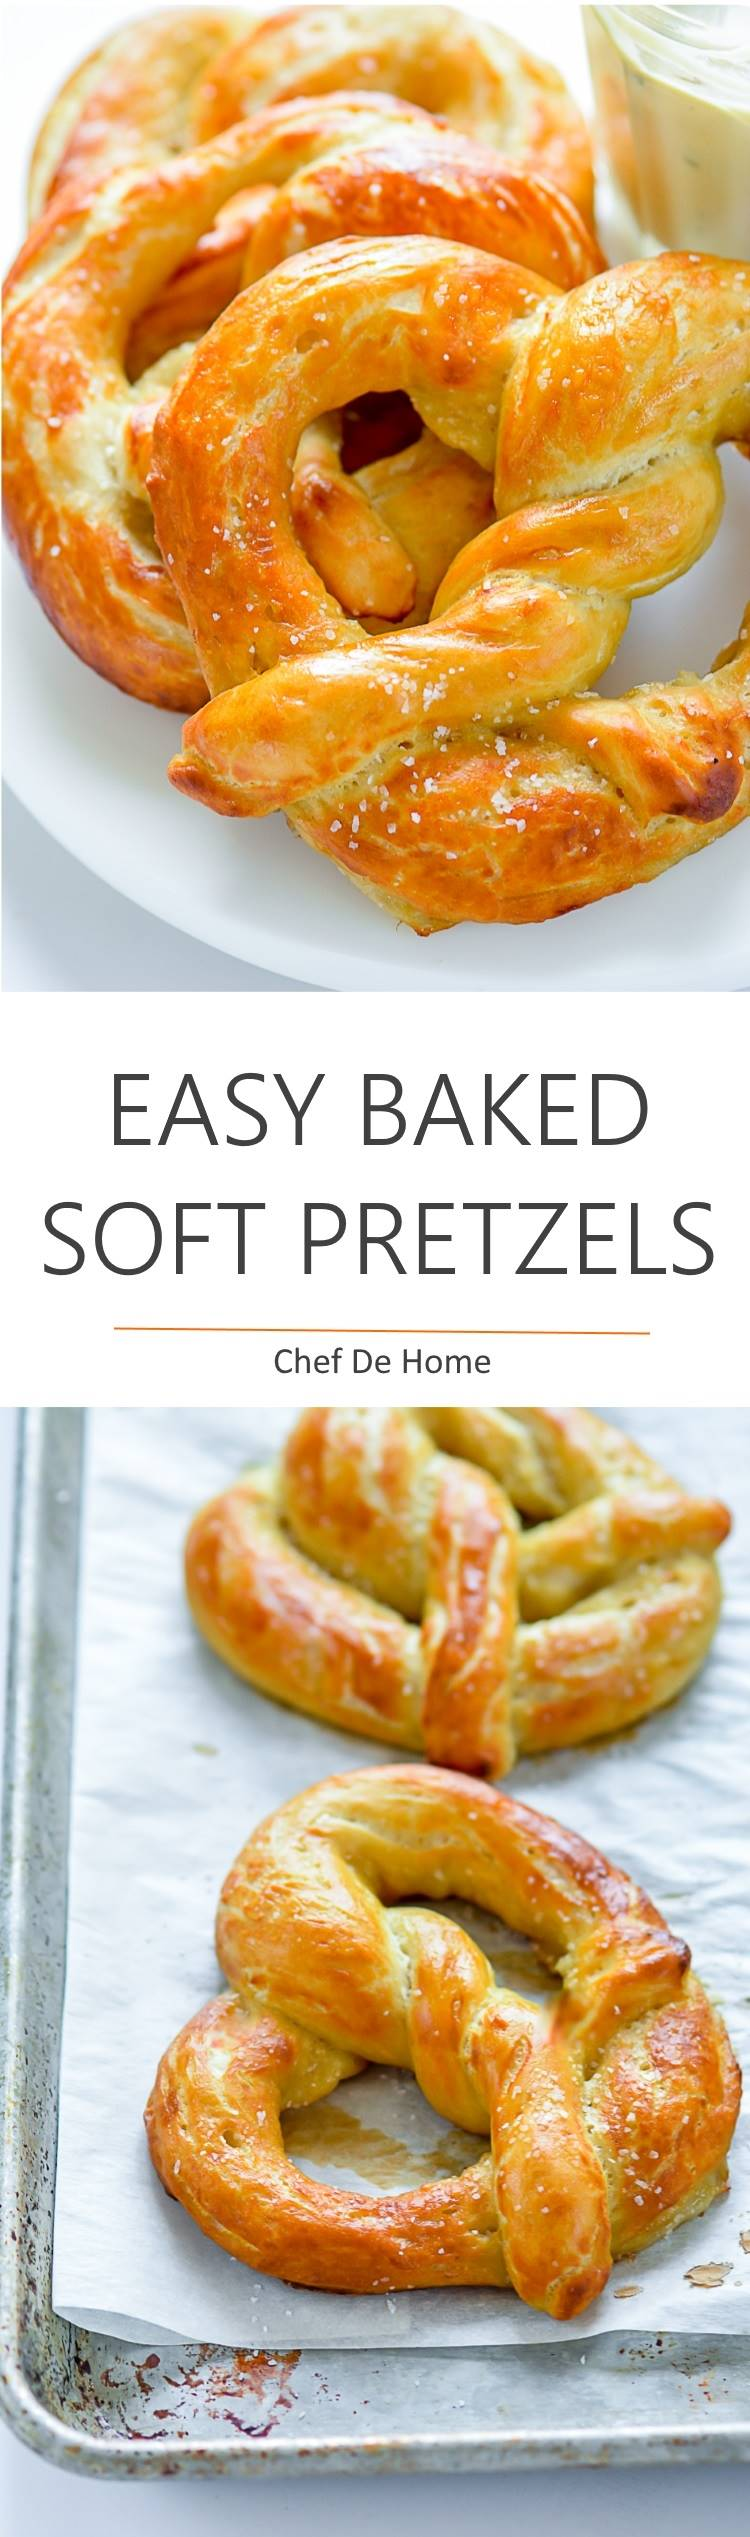 Easy and extra Soft Pretzels favorite of kids and party friendly   chefdehome.com